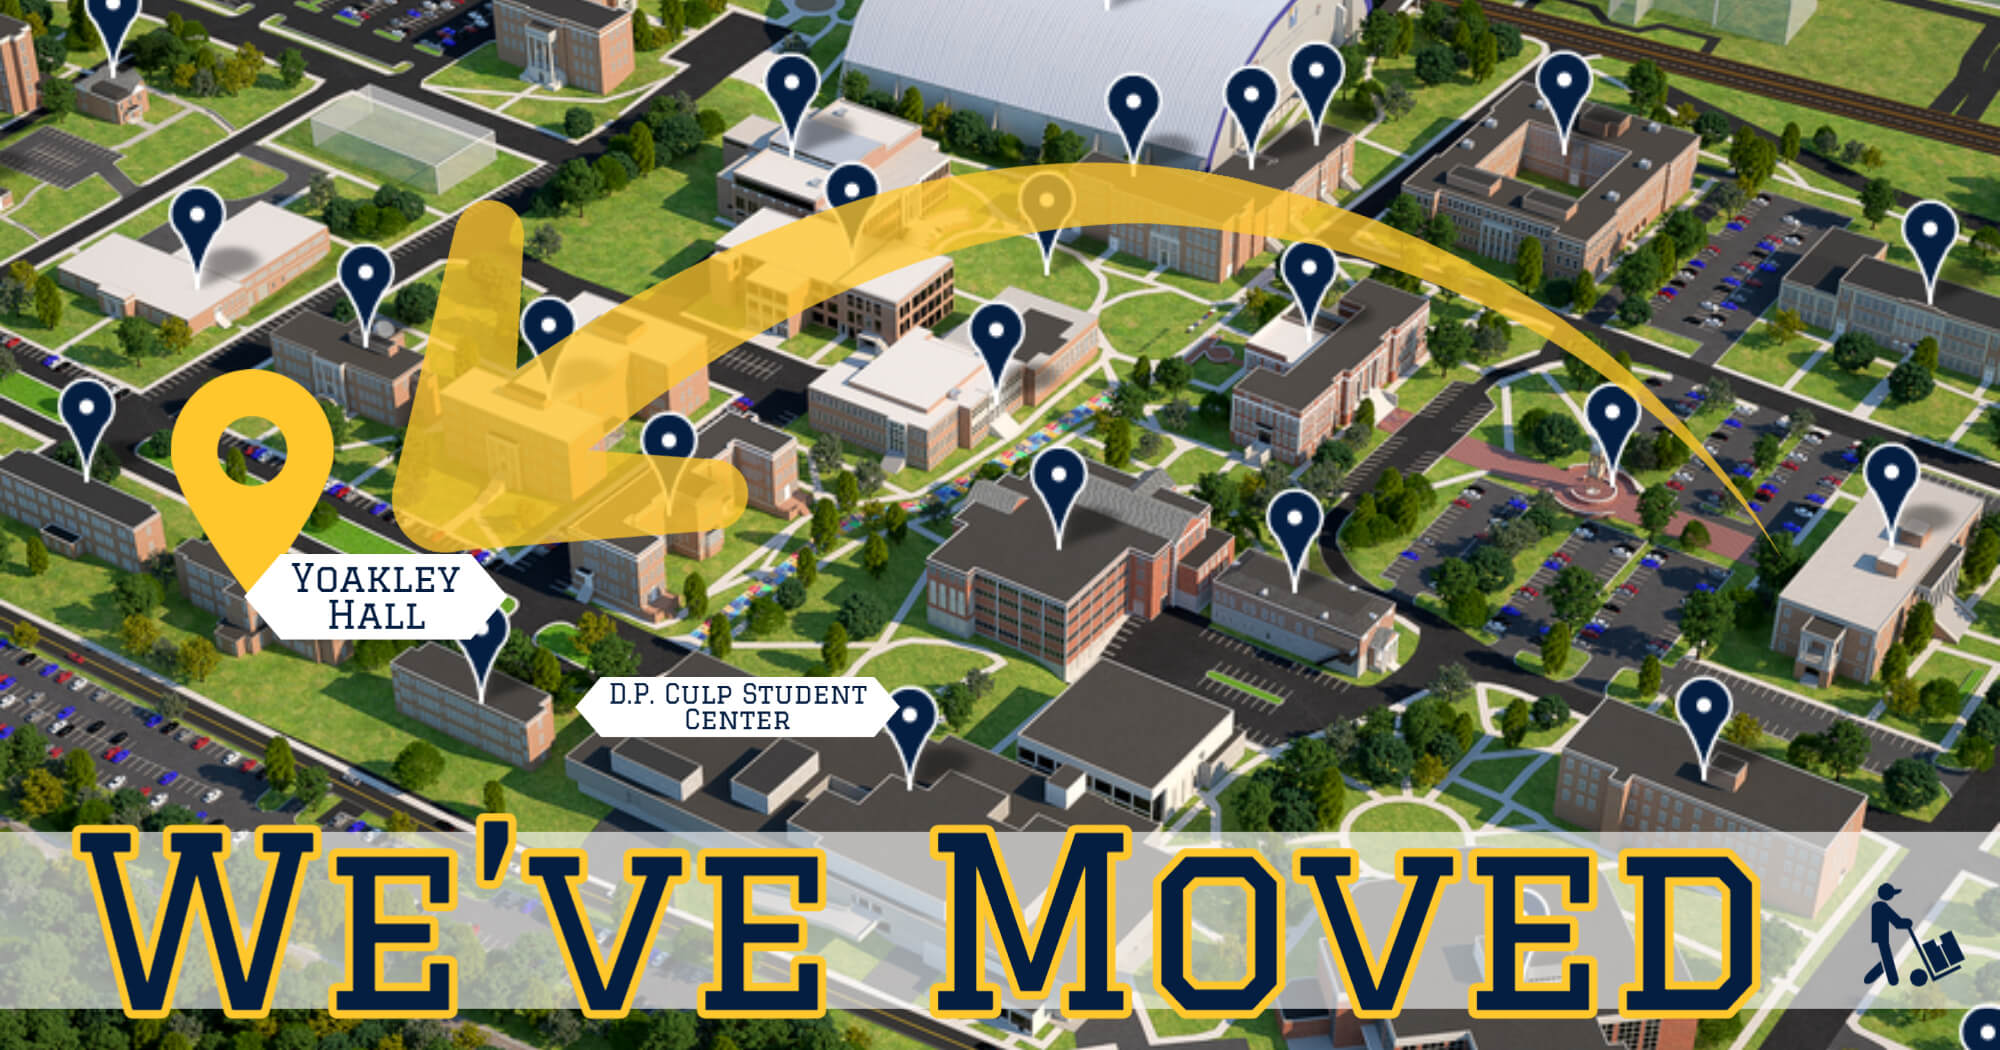 The Graduate School at ETSU has moved to Yoakley Hall